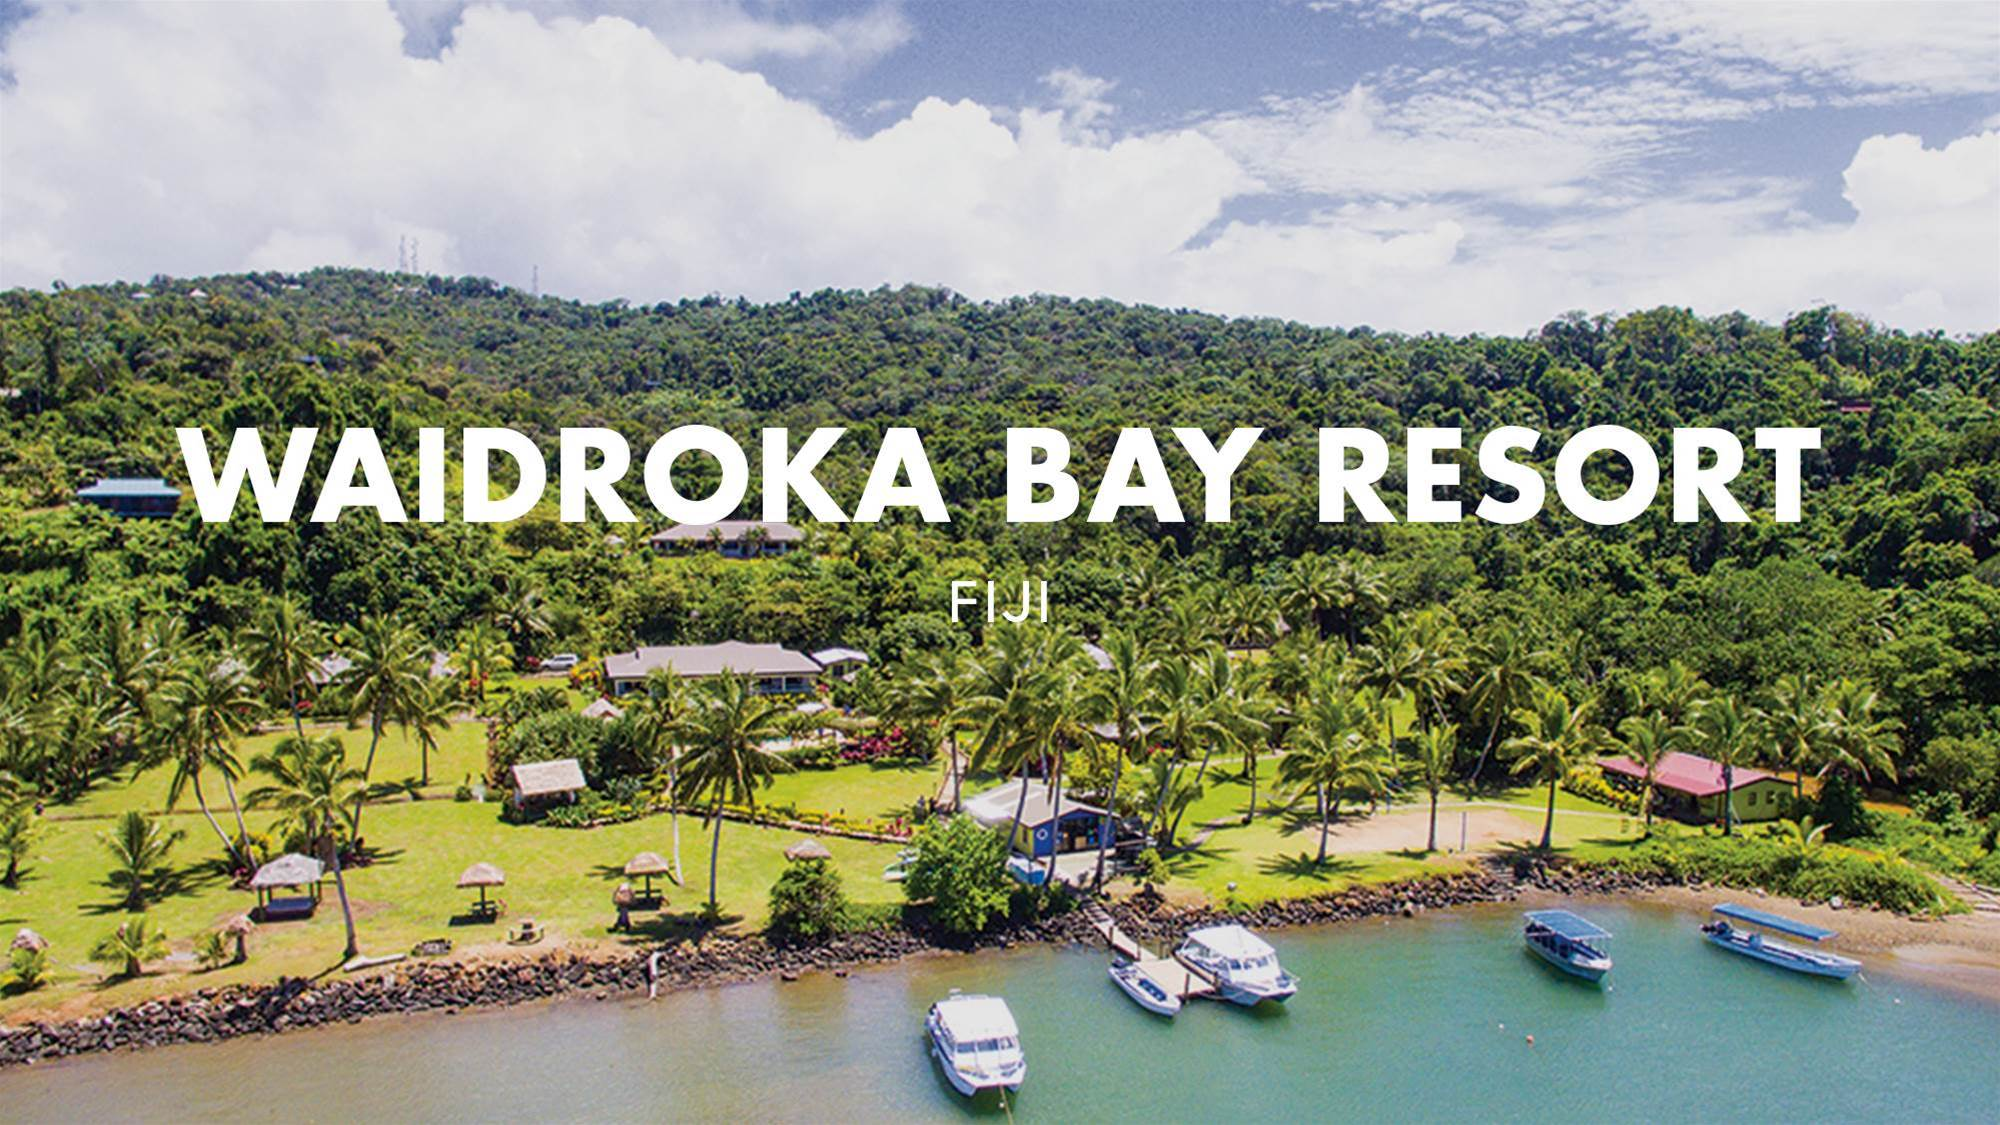 WAIDROKA BAY RESORT